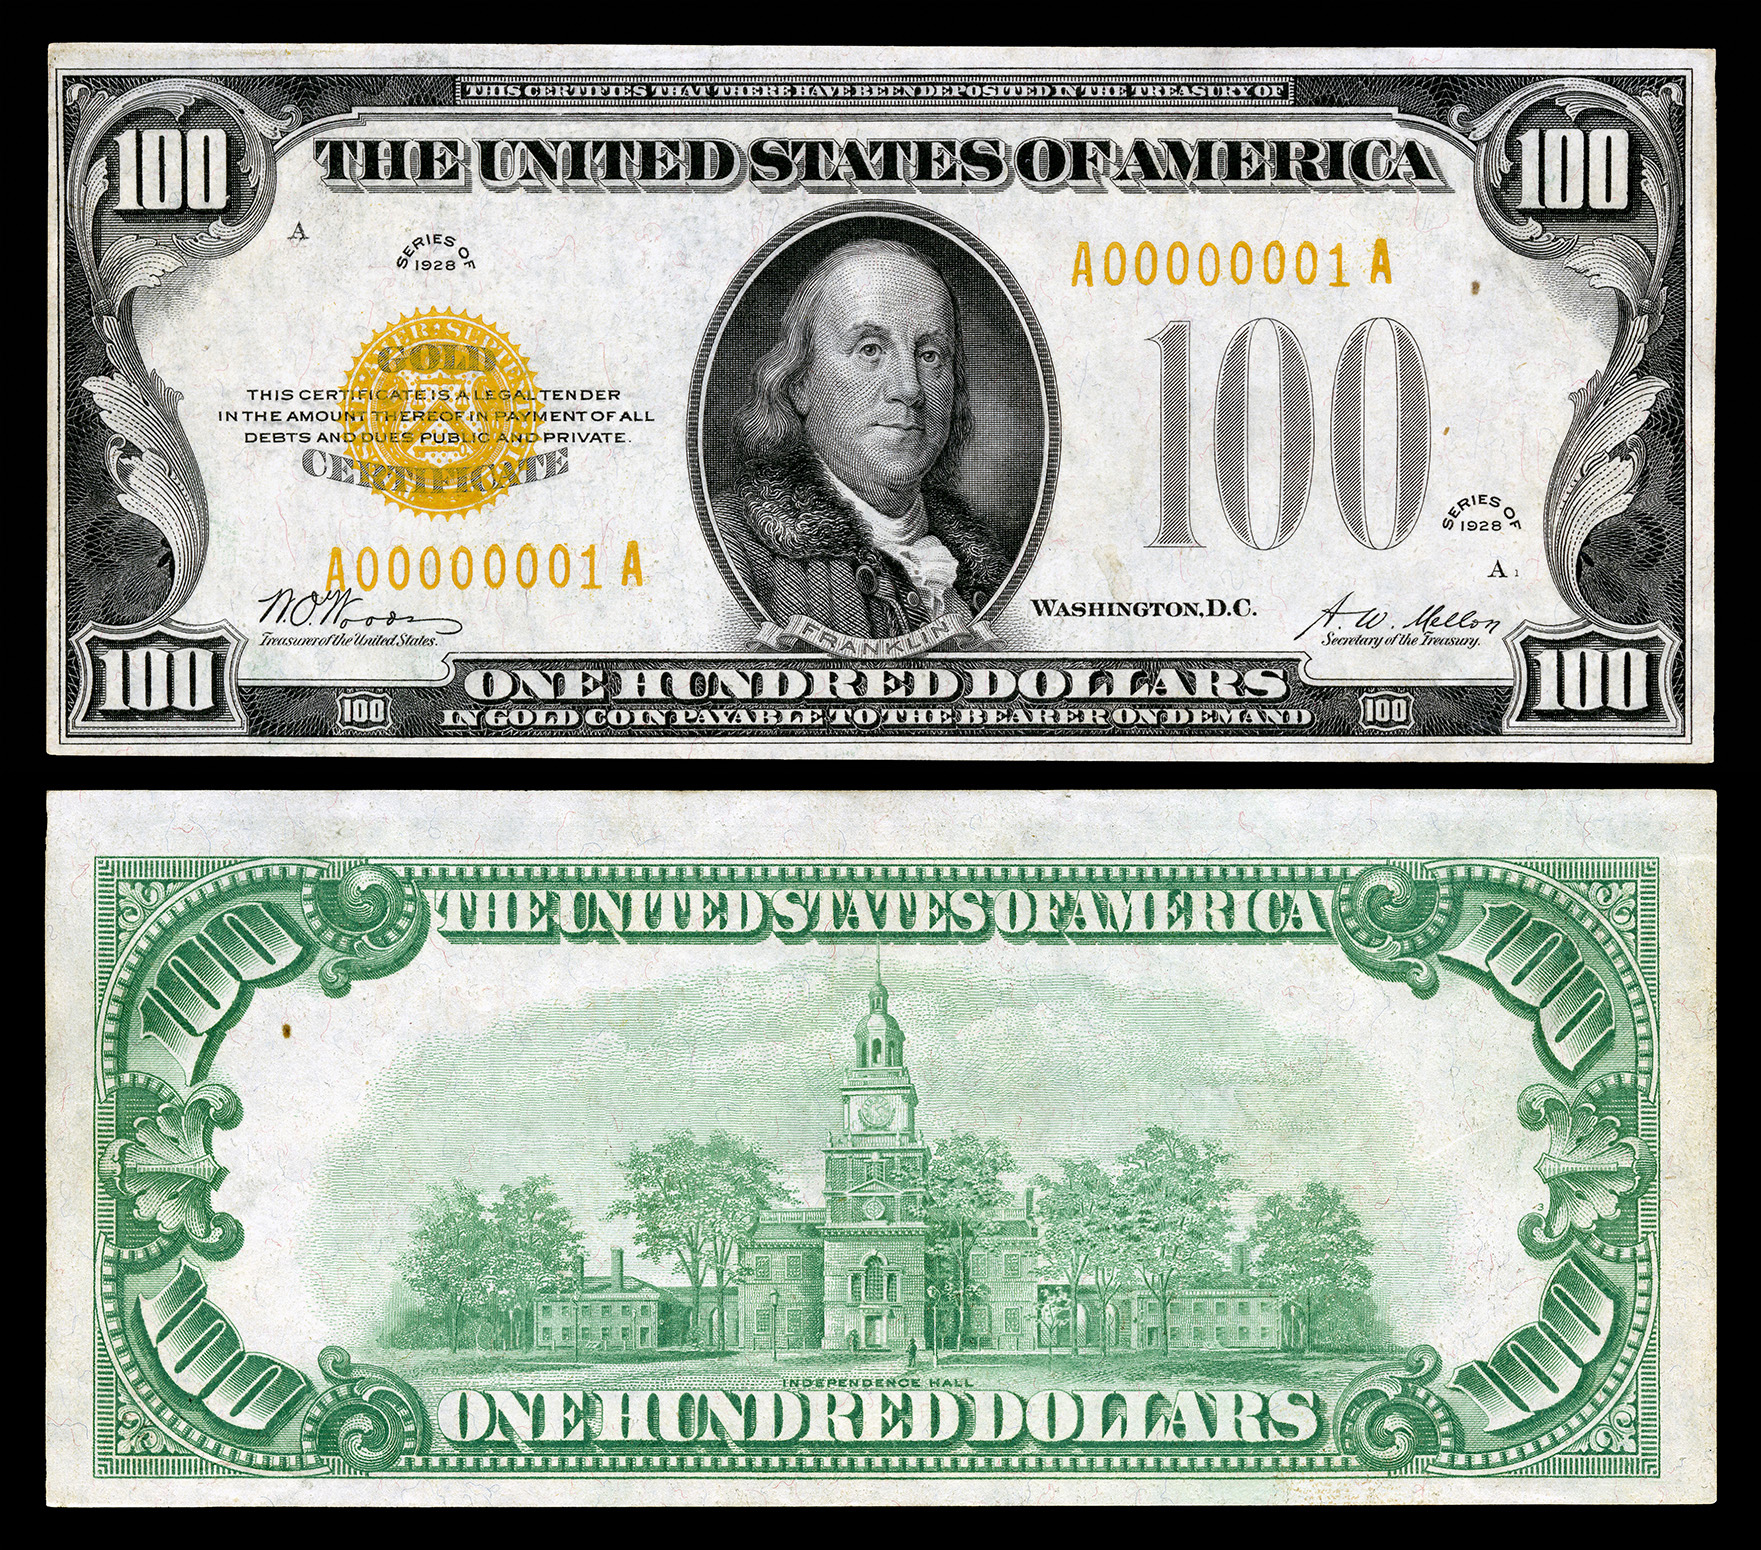 Series of 1928 united states currency wikipedia 100 gold certificate series 1928 fr2405 depicting benjamin franklin xflitez Gallery